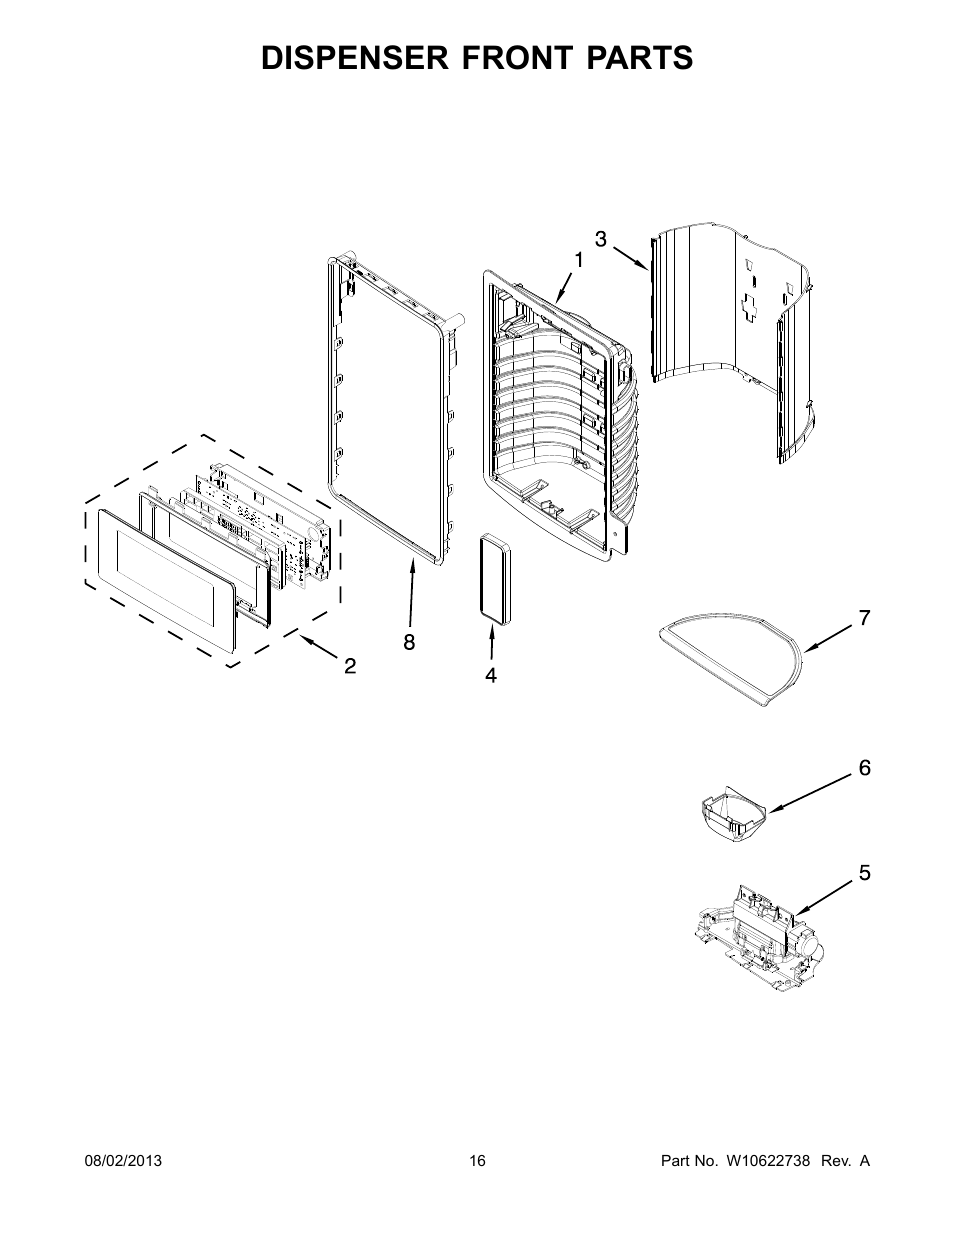 [MANUALS] Parts For Whirlpool Ghw9150pw2 Dispenser Parts